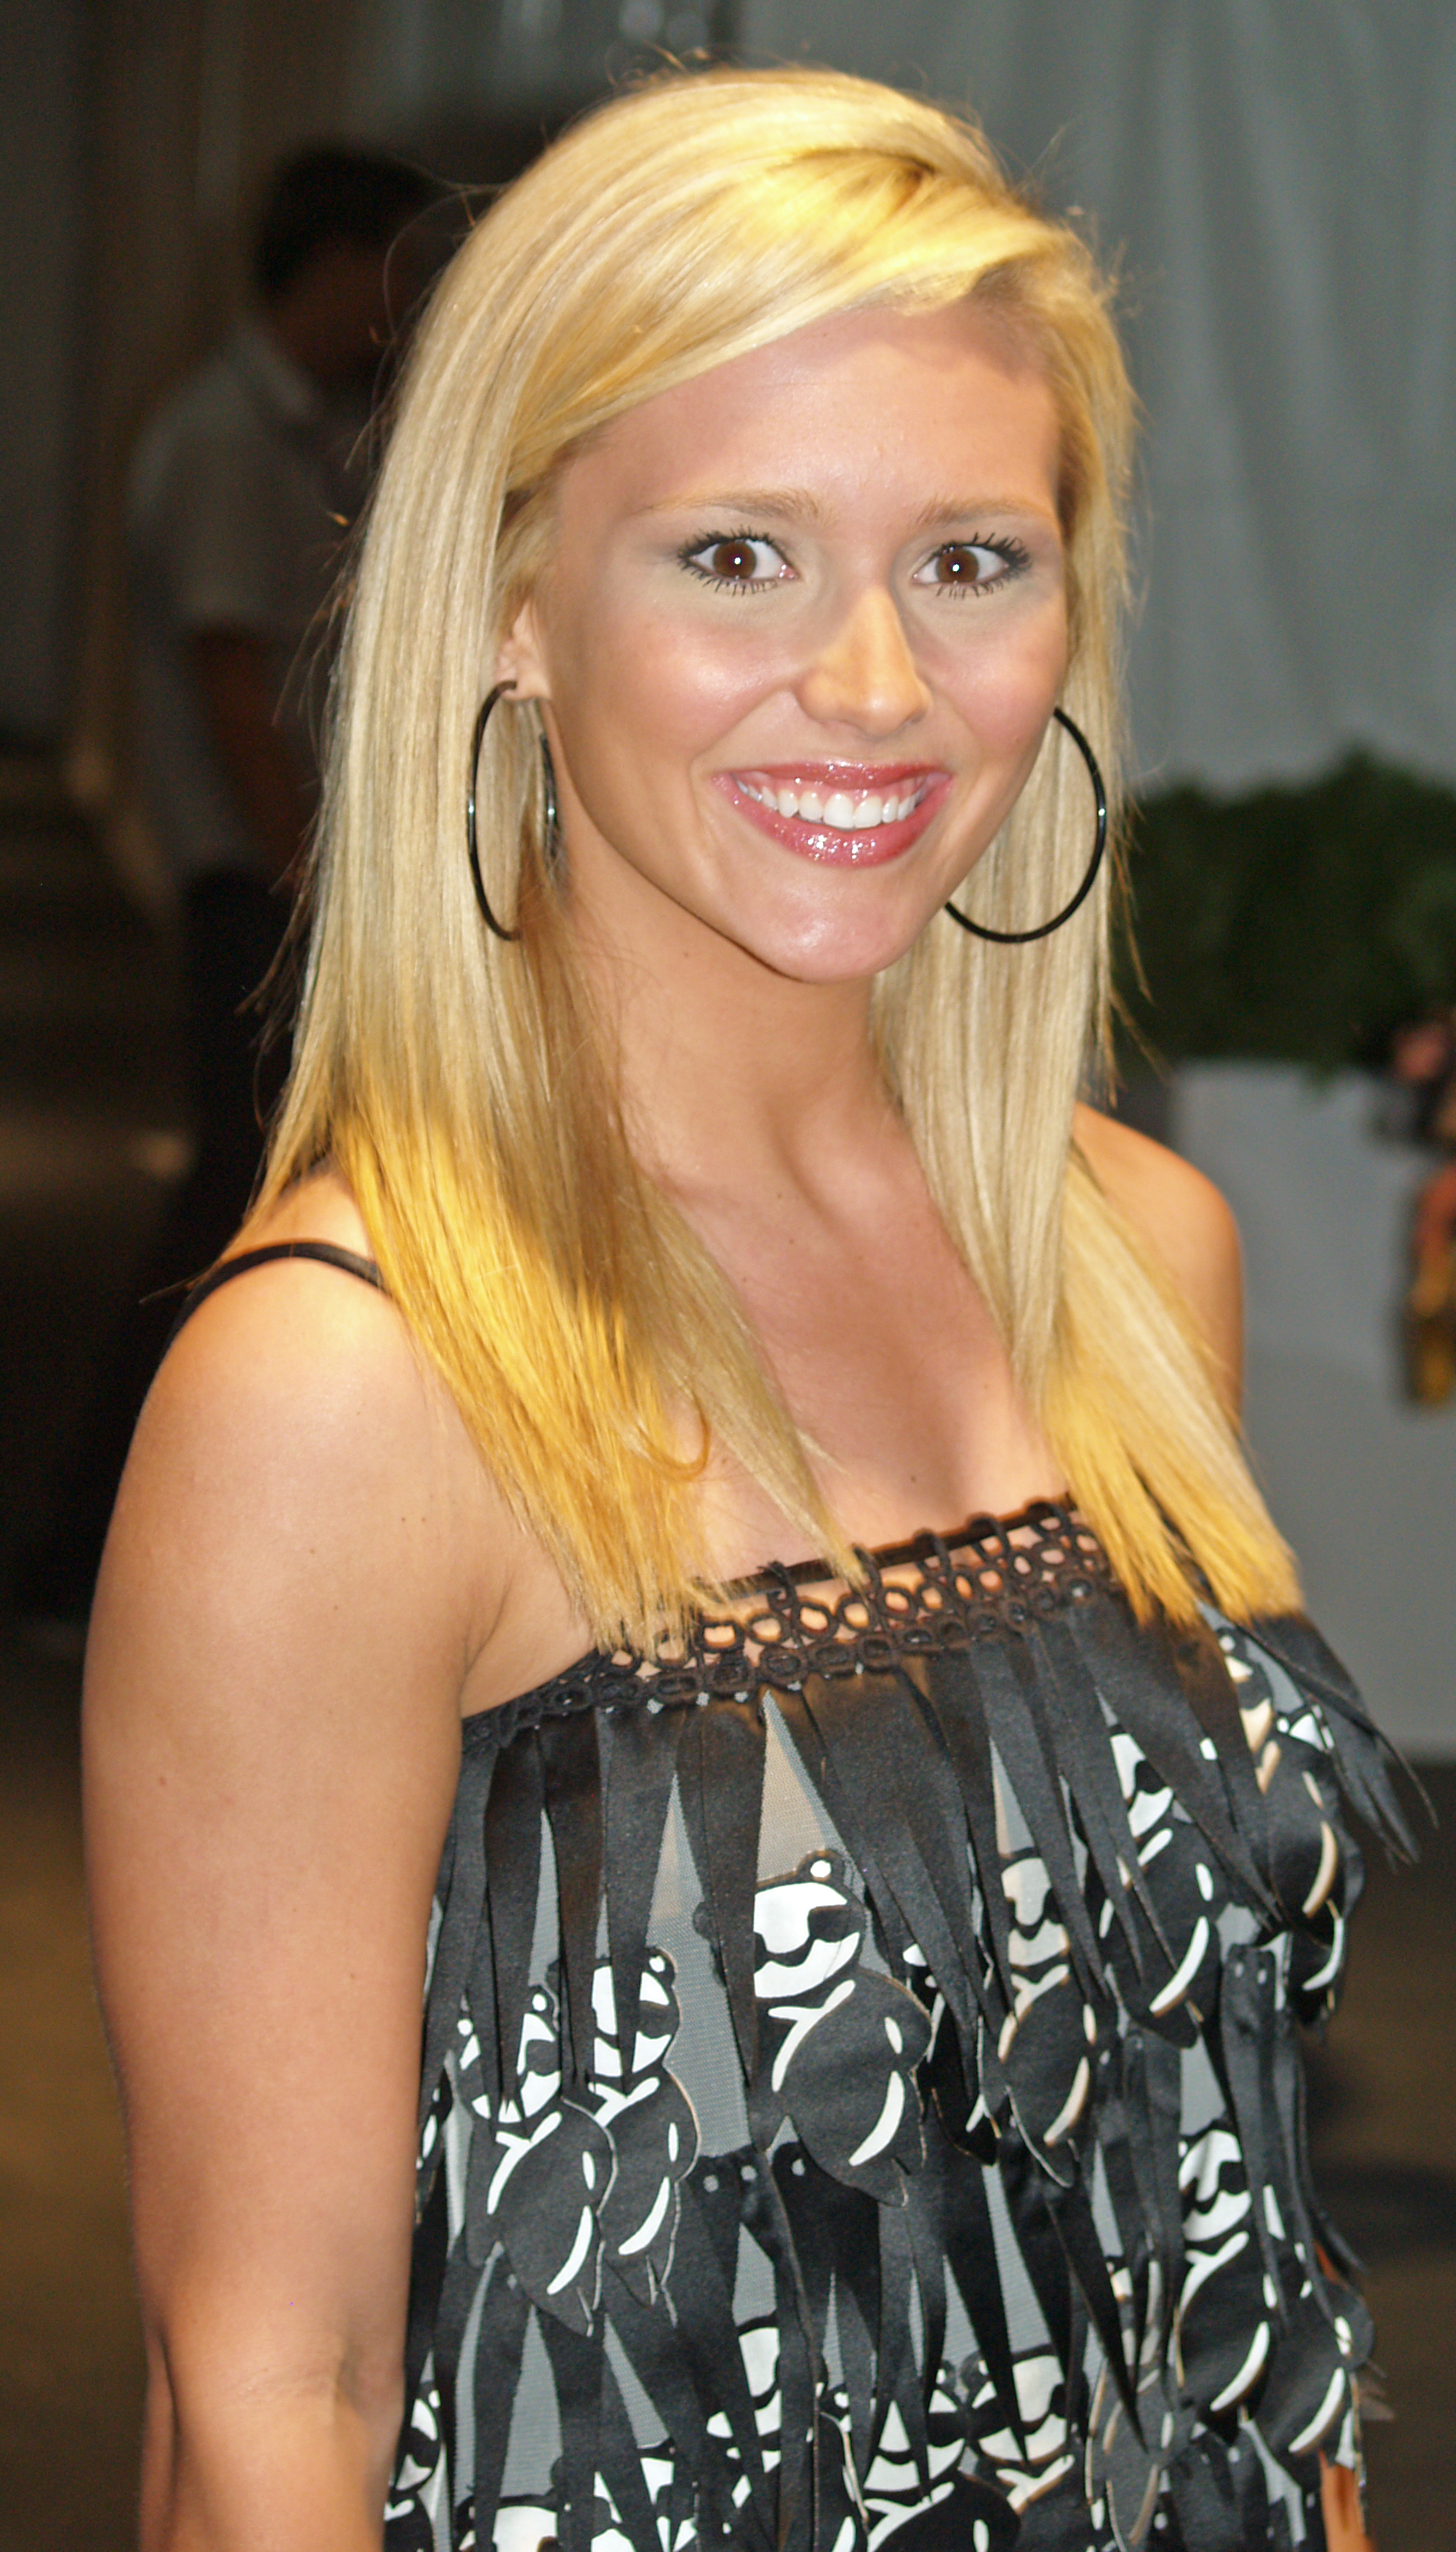 The First Miss Arkansas Teen USA, Stevi Perry won Miss Teen USA 2008